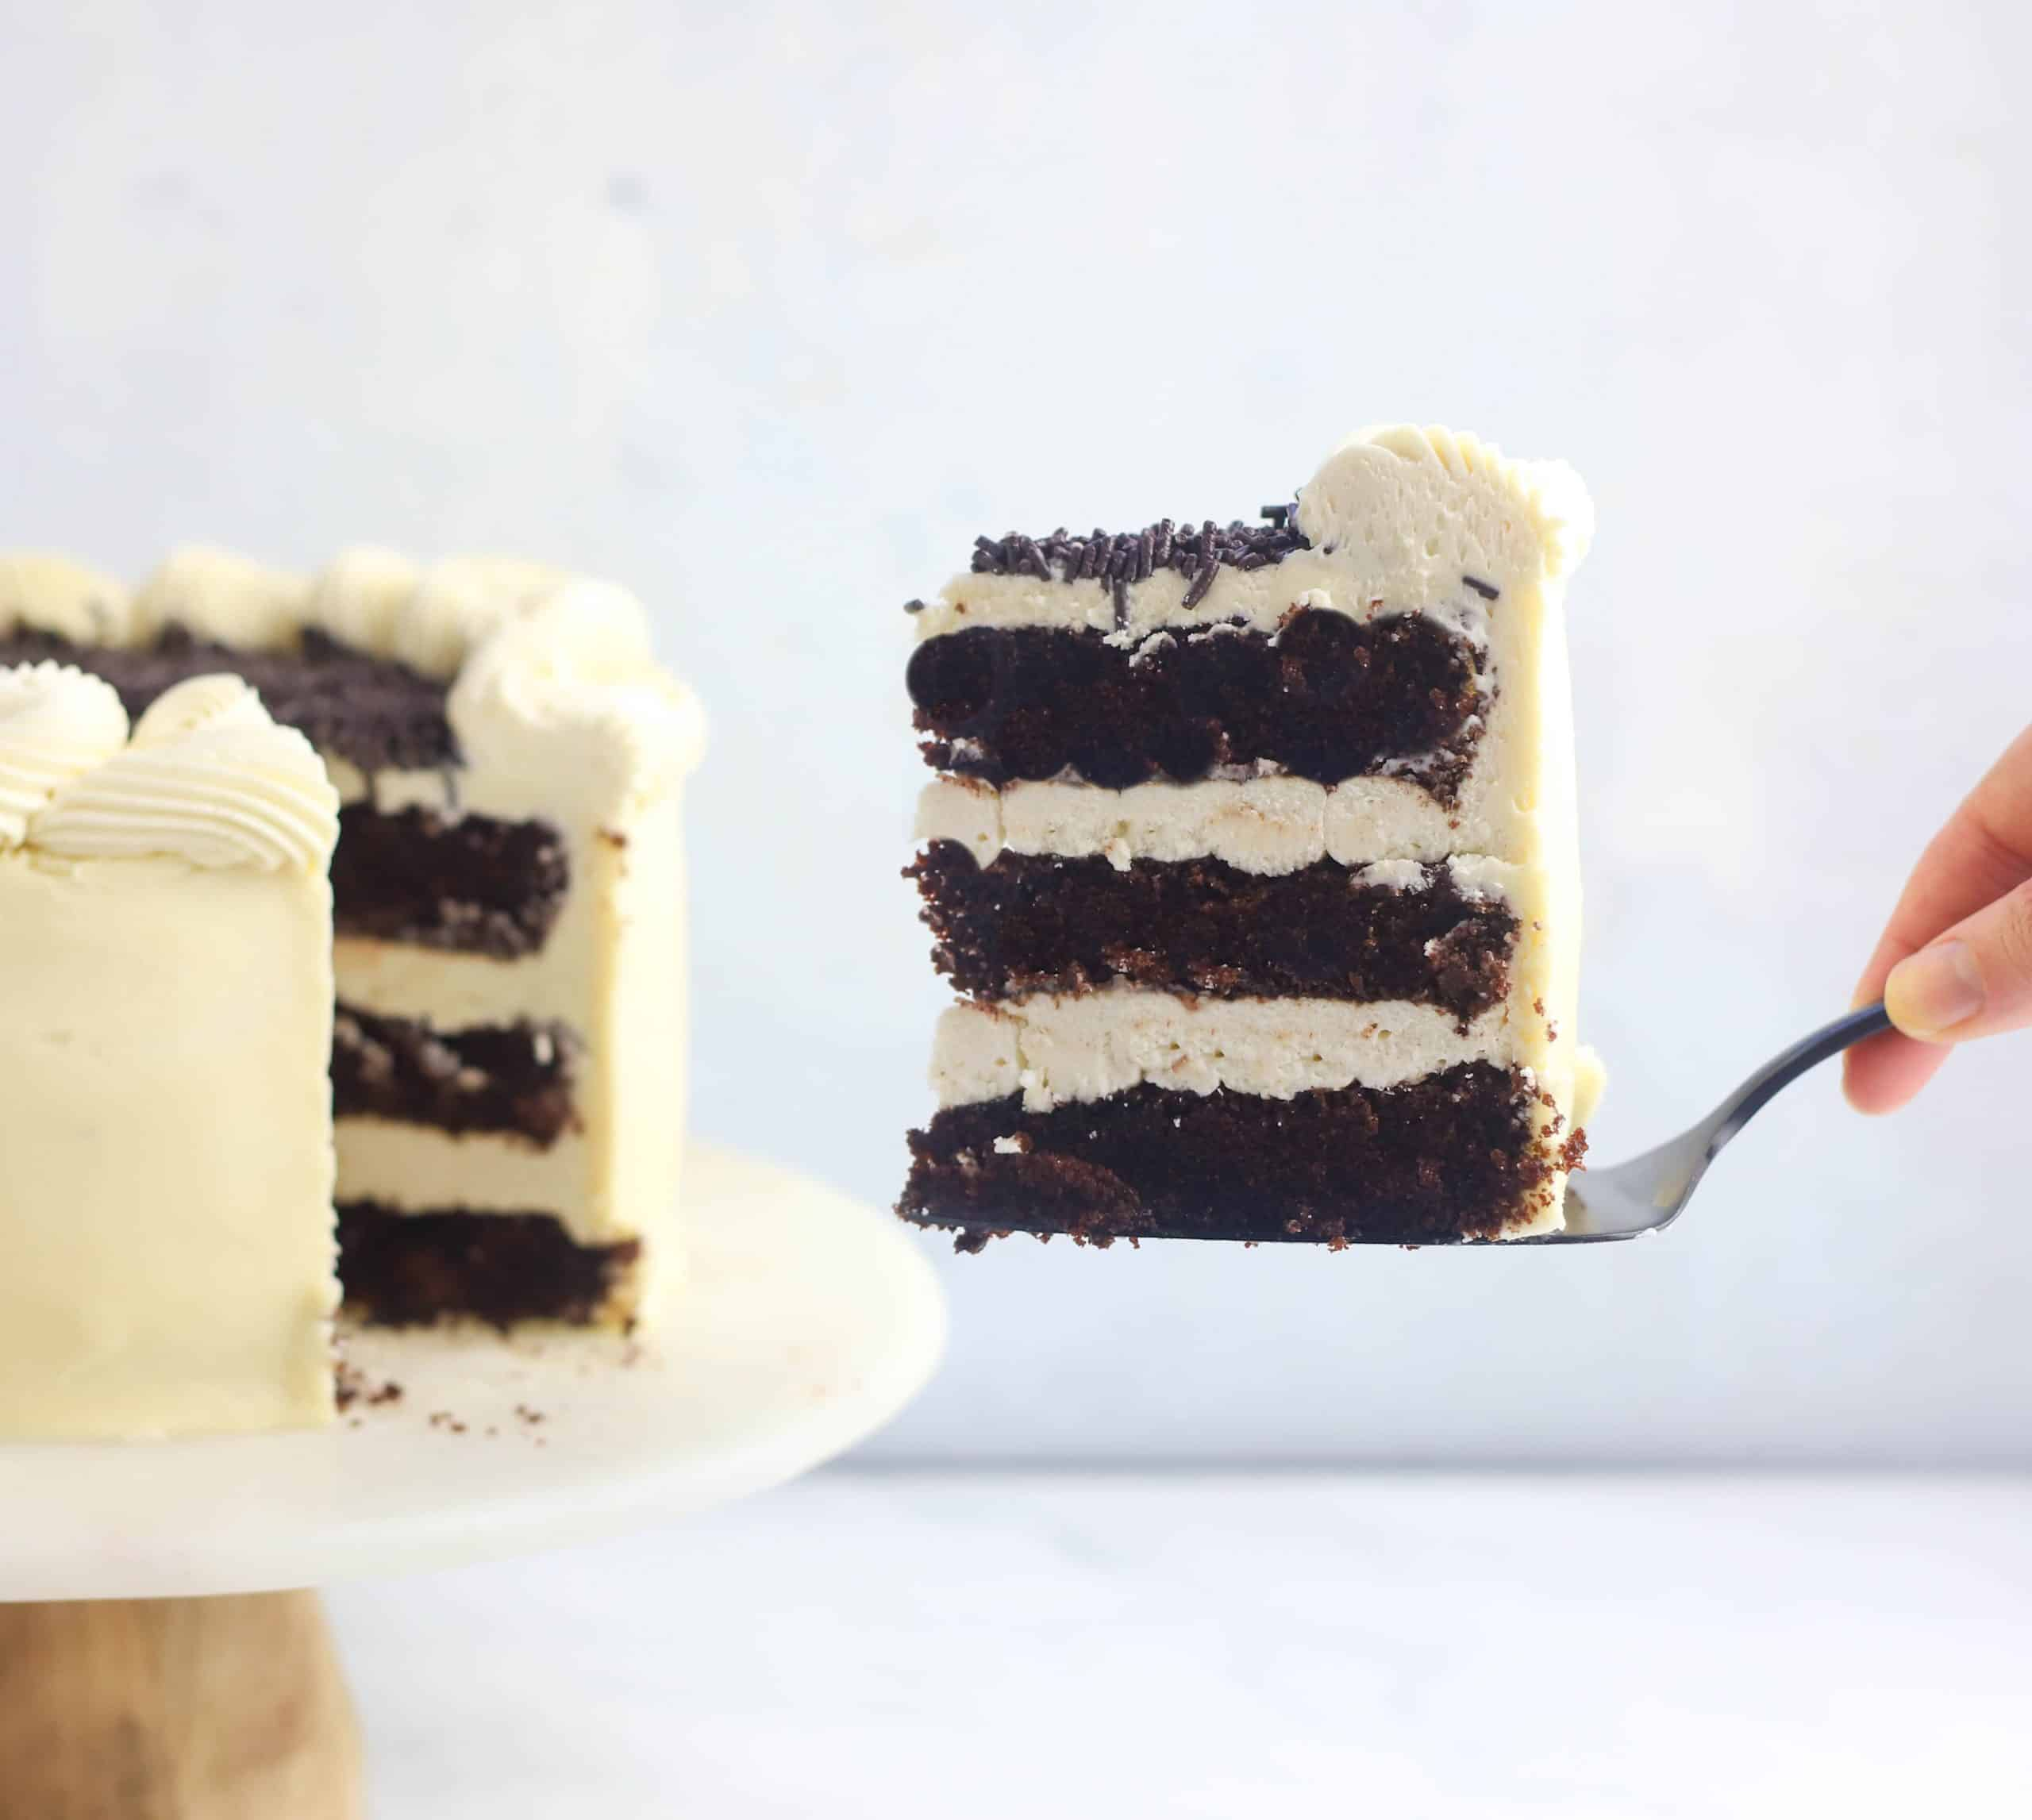 slice of Guinness cake being cut and removed on a cake server